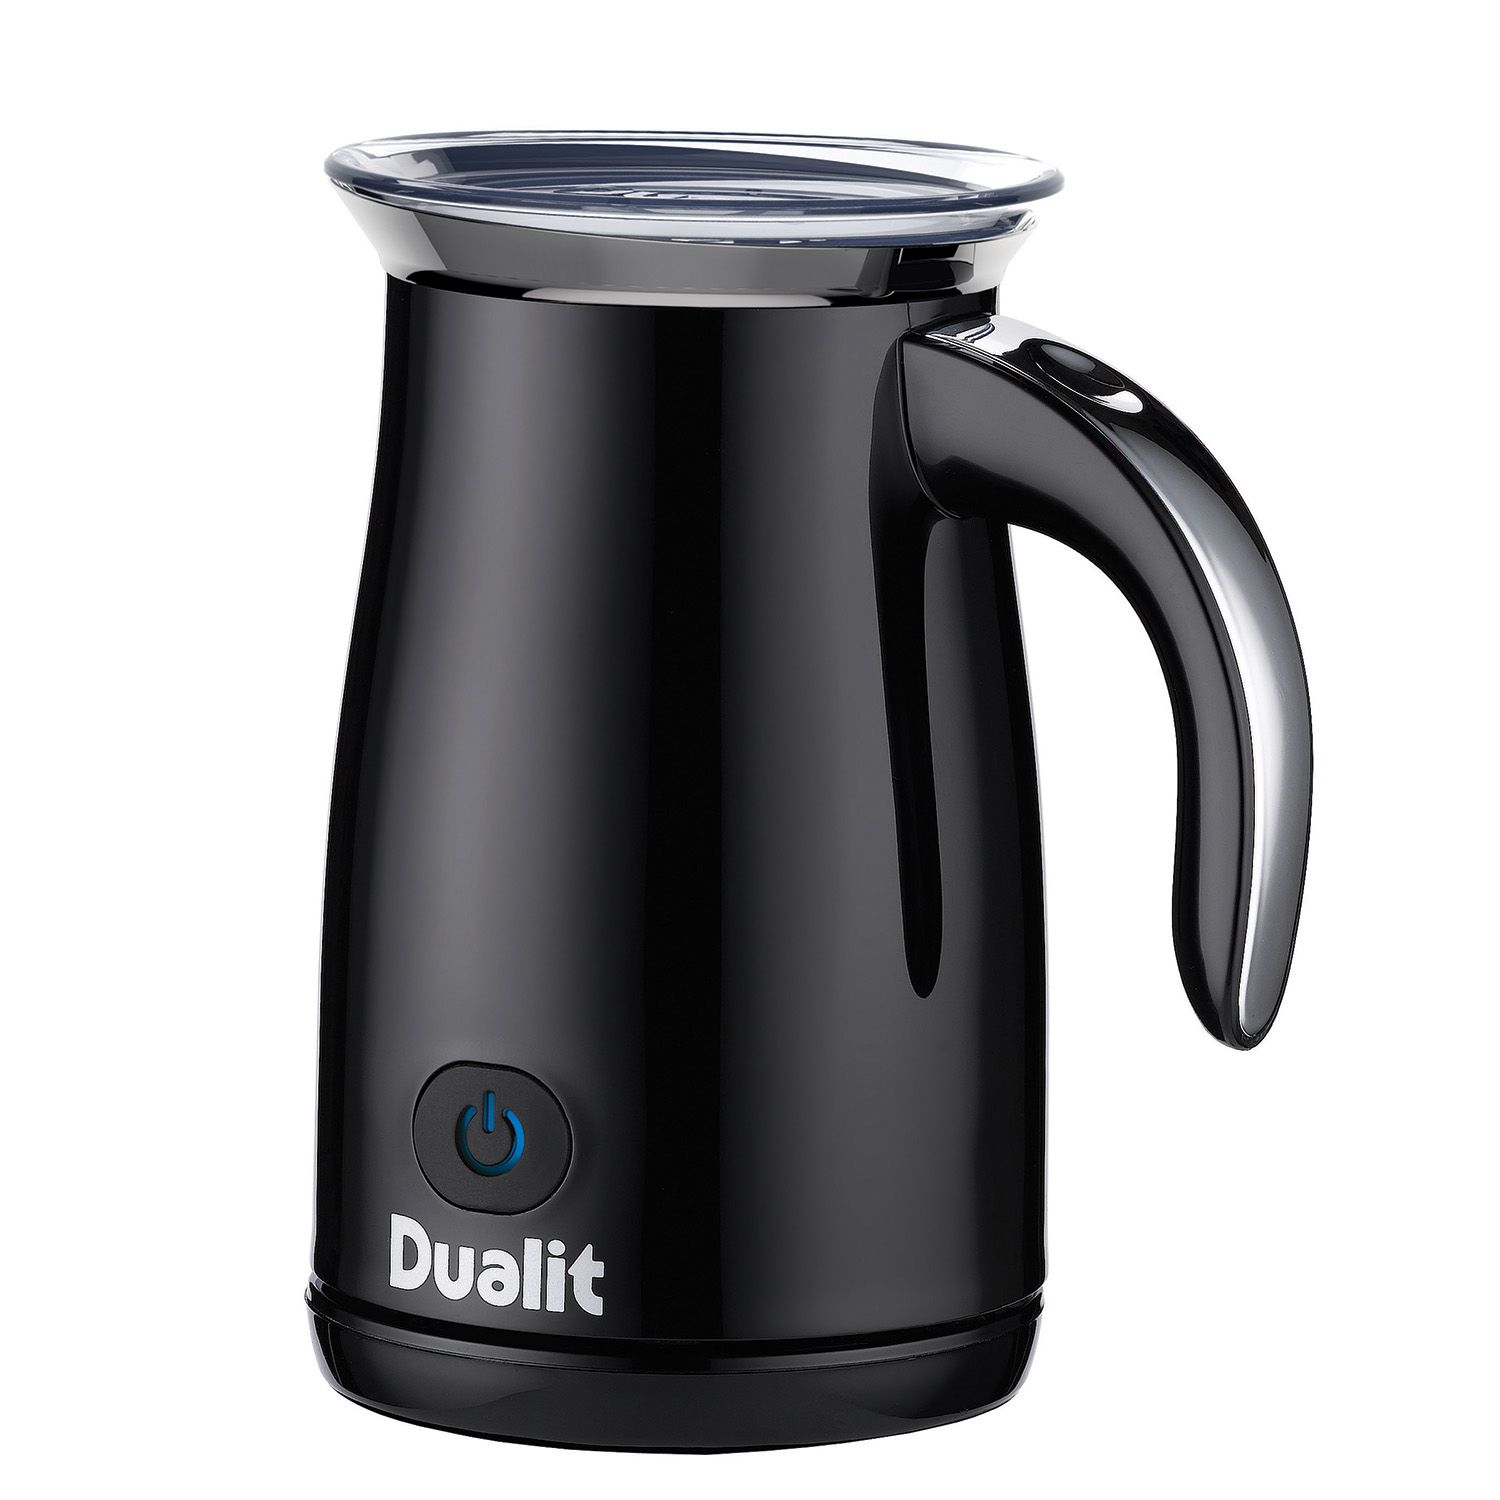 Dualit Black Steel Milk Frother Sur La Table in 2020